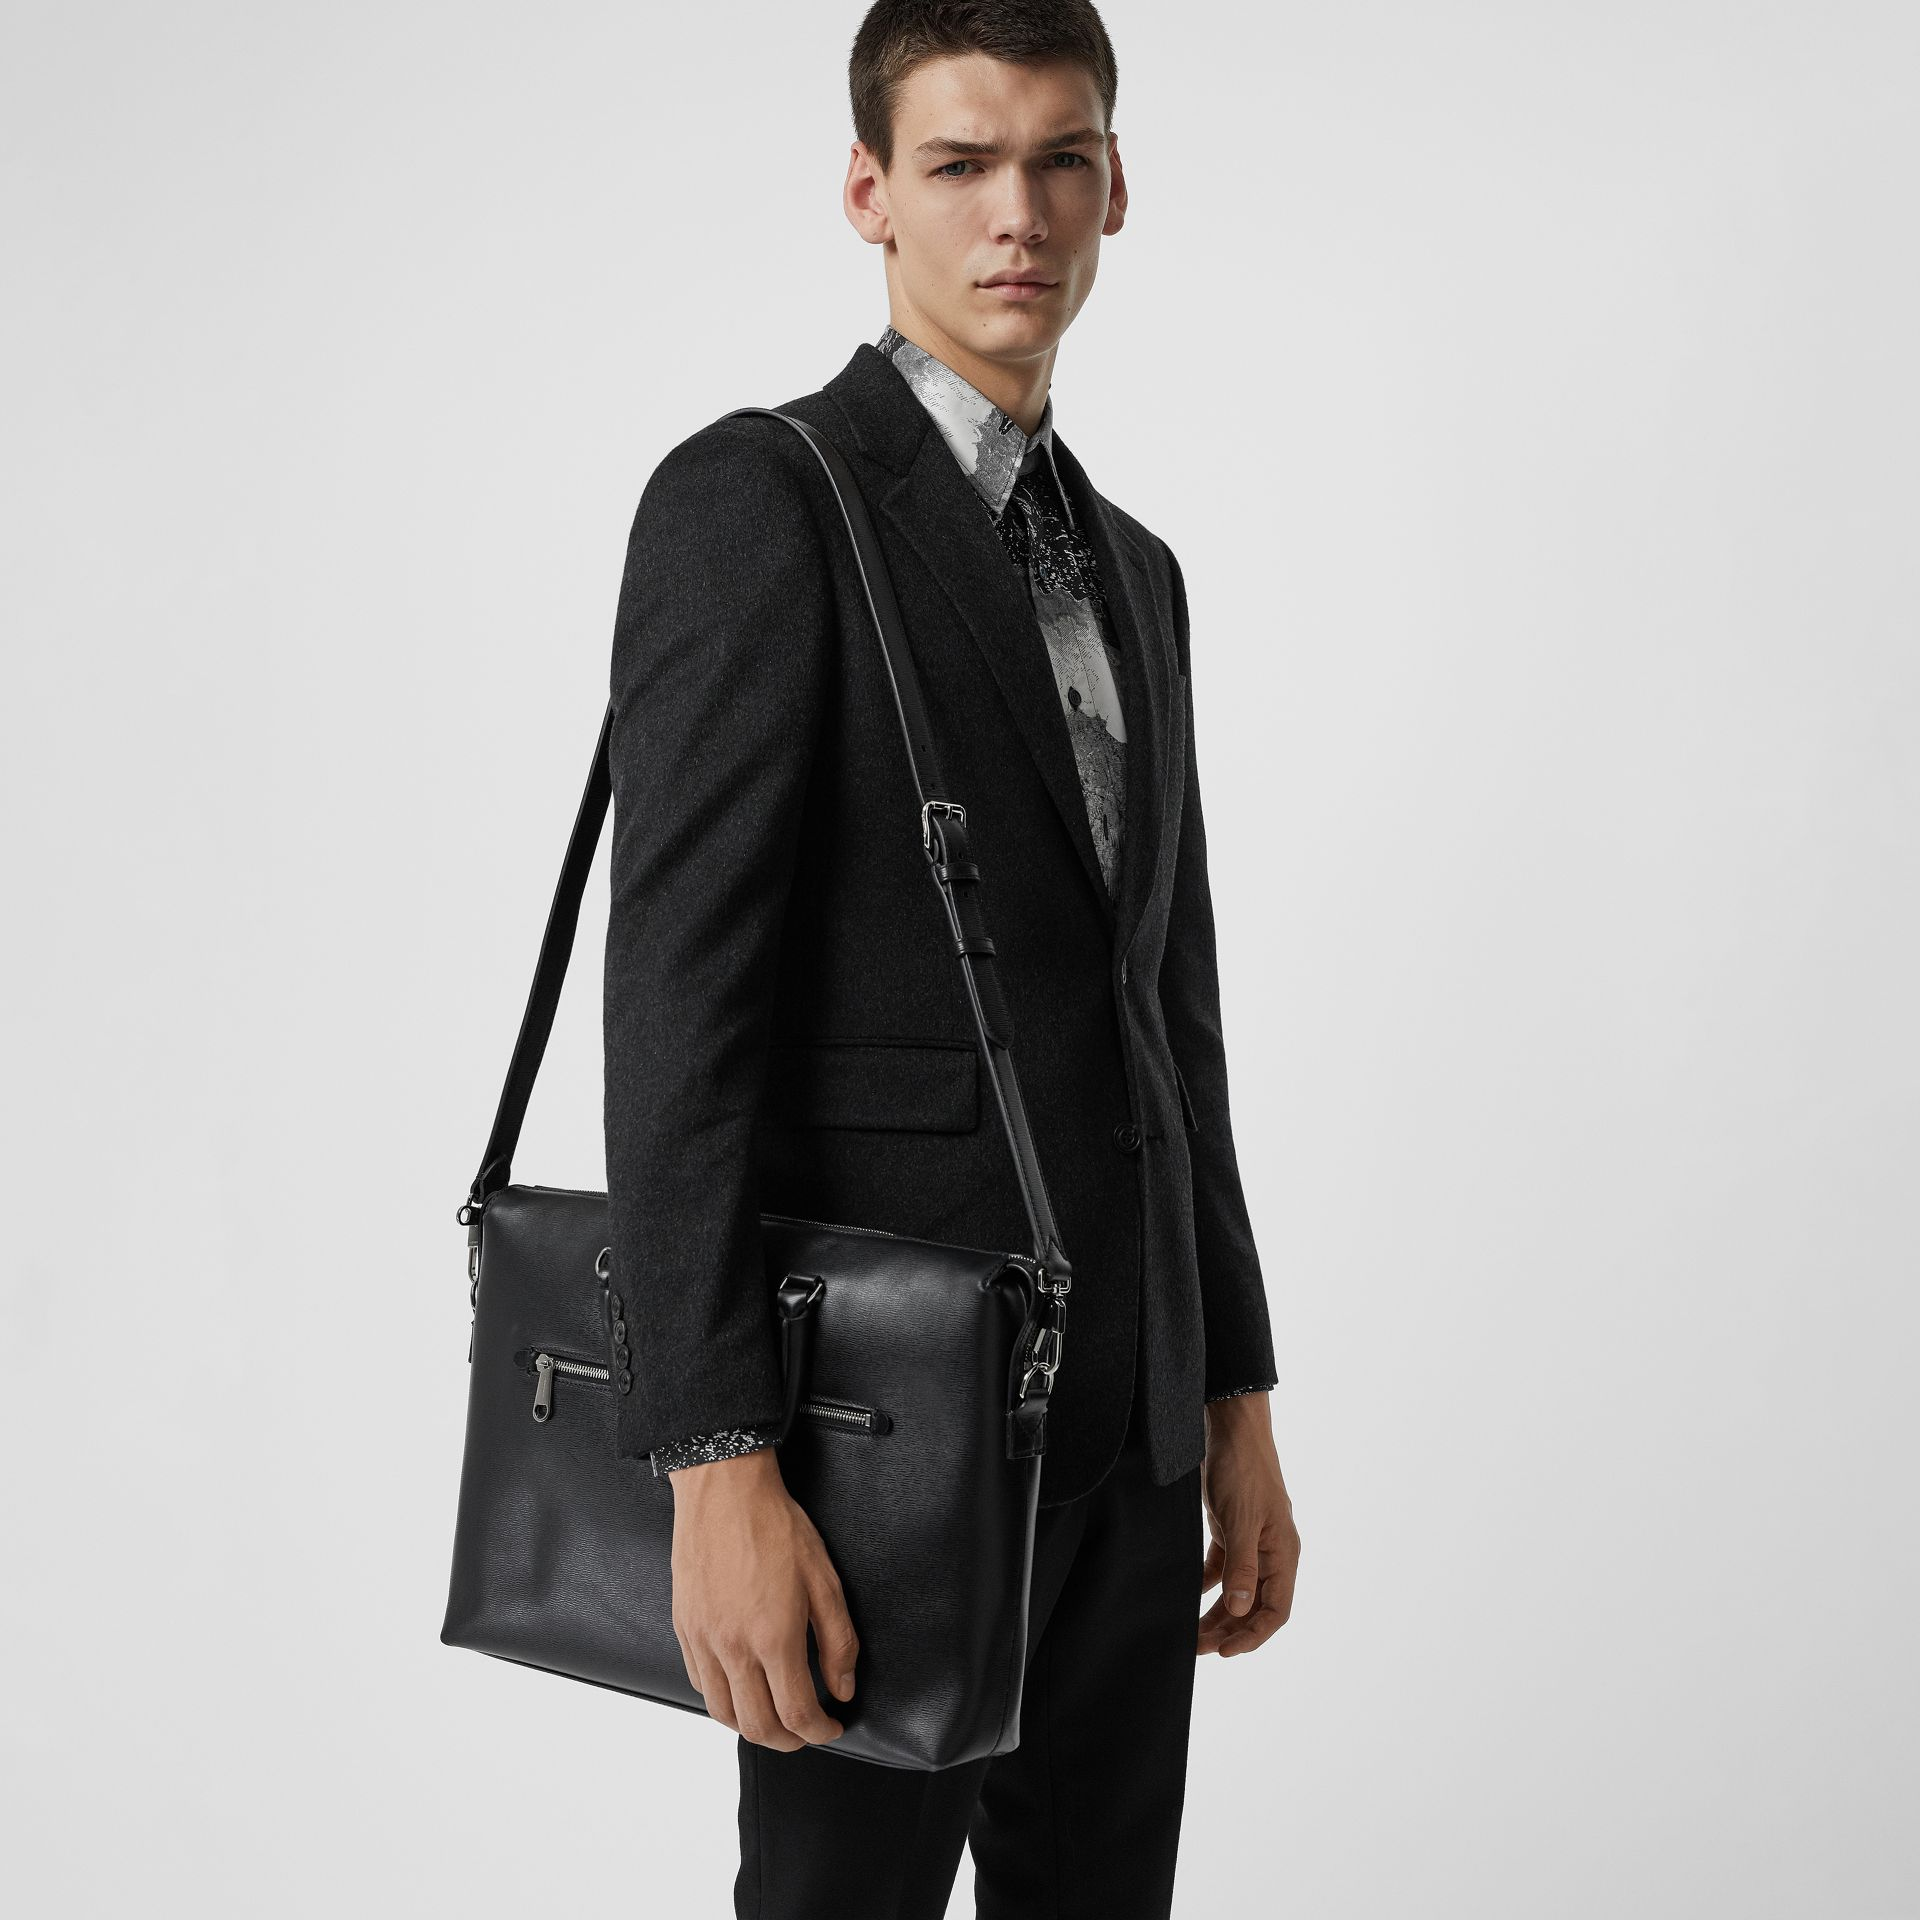 Large Textured Leather Briefcase in Black - Men | Burberry - gallery image 3